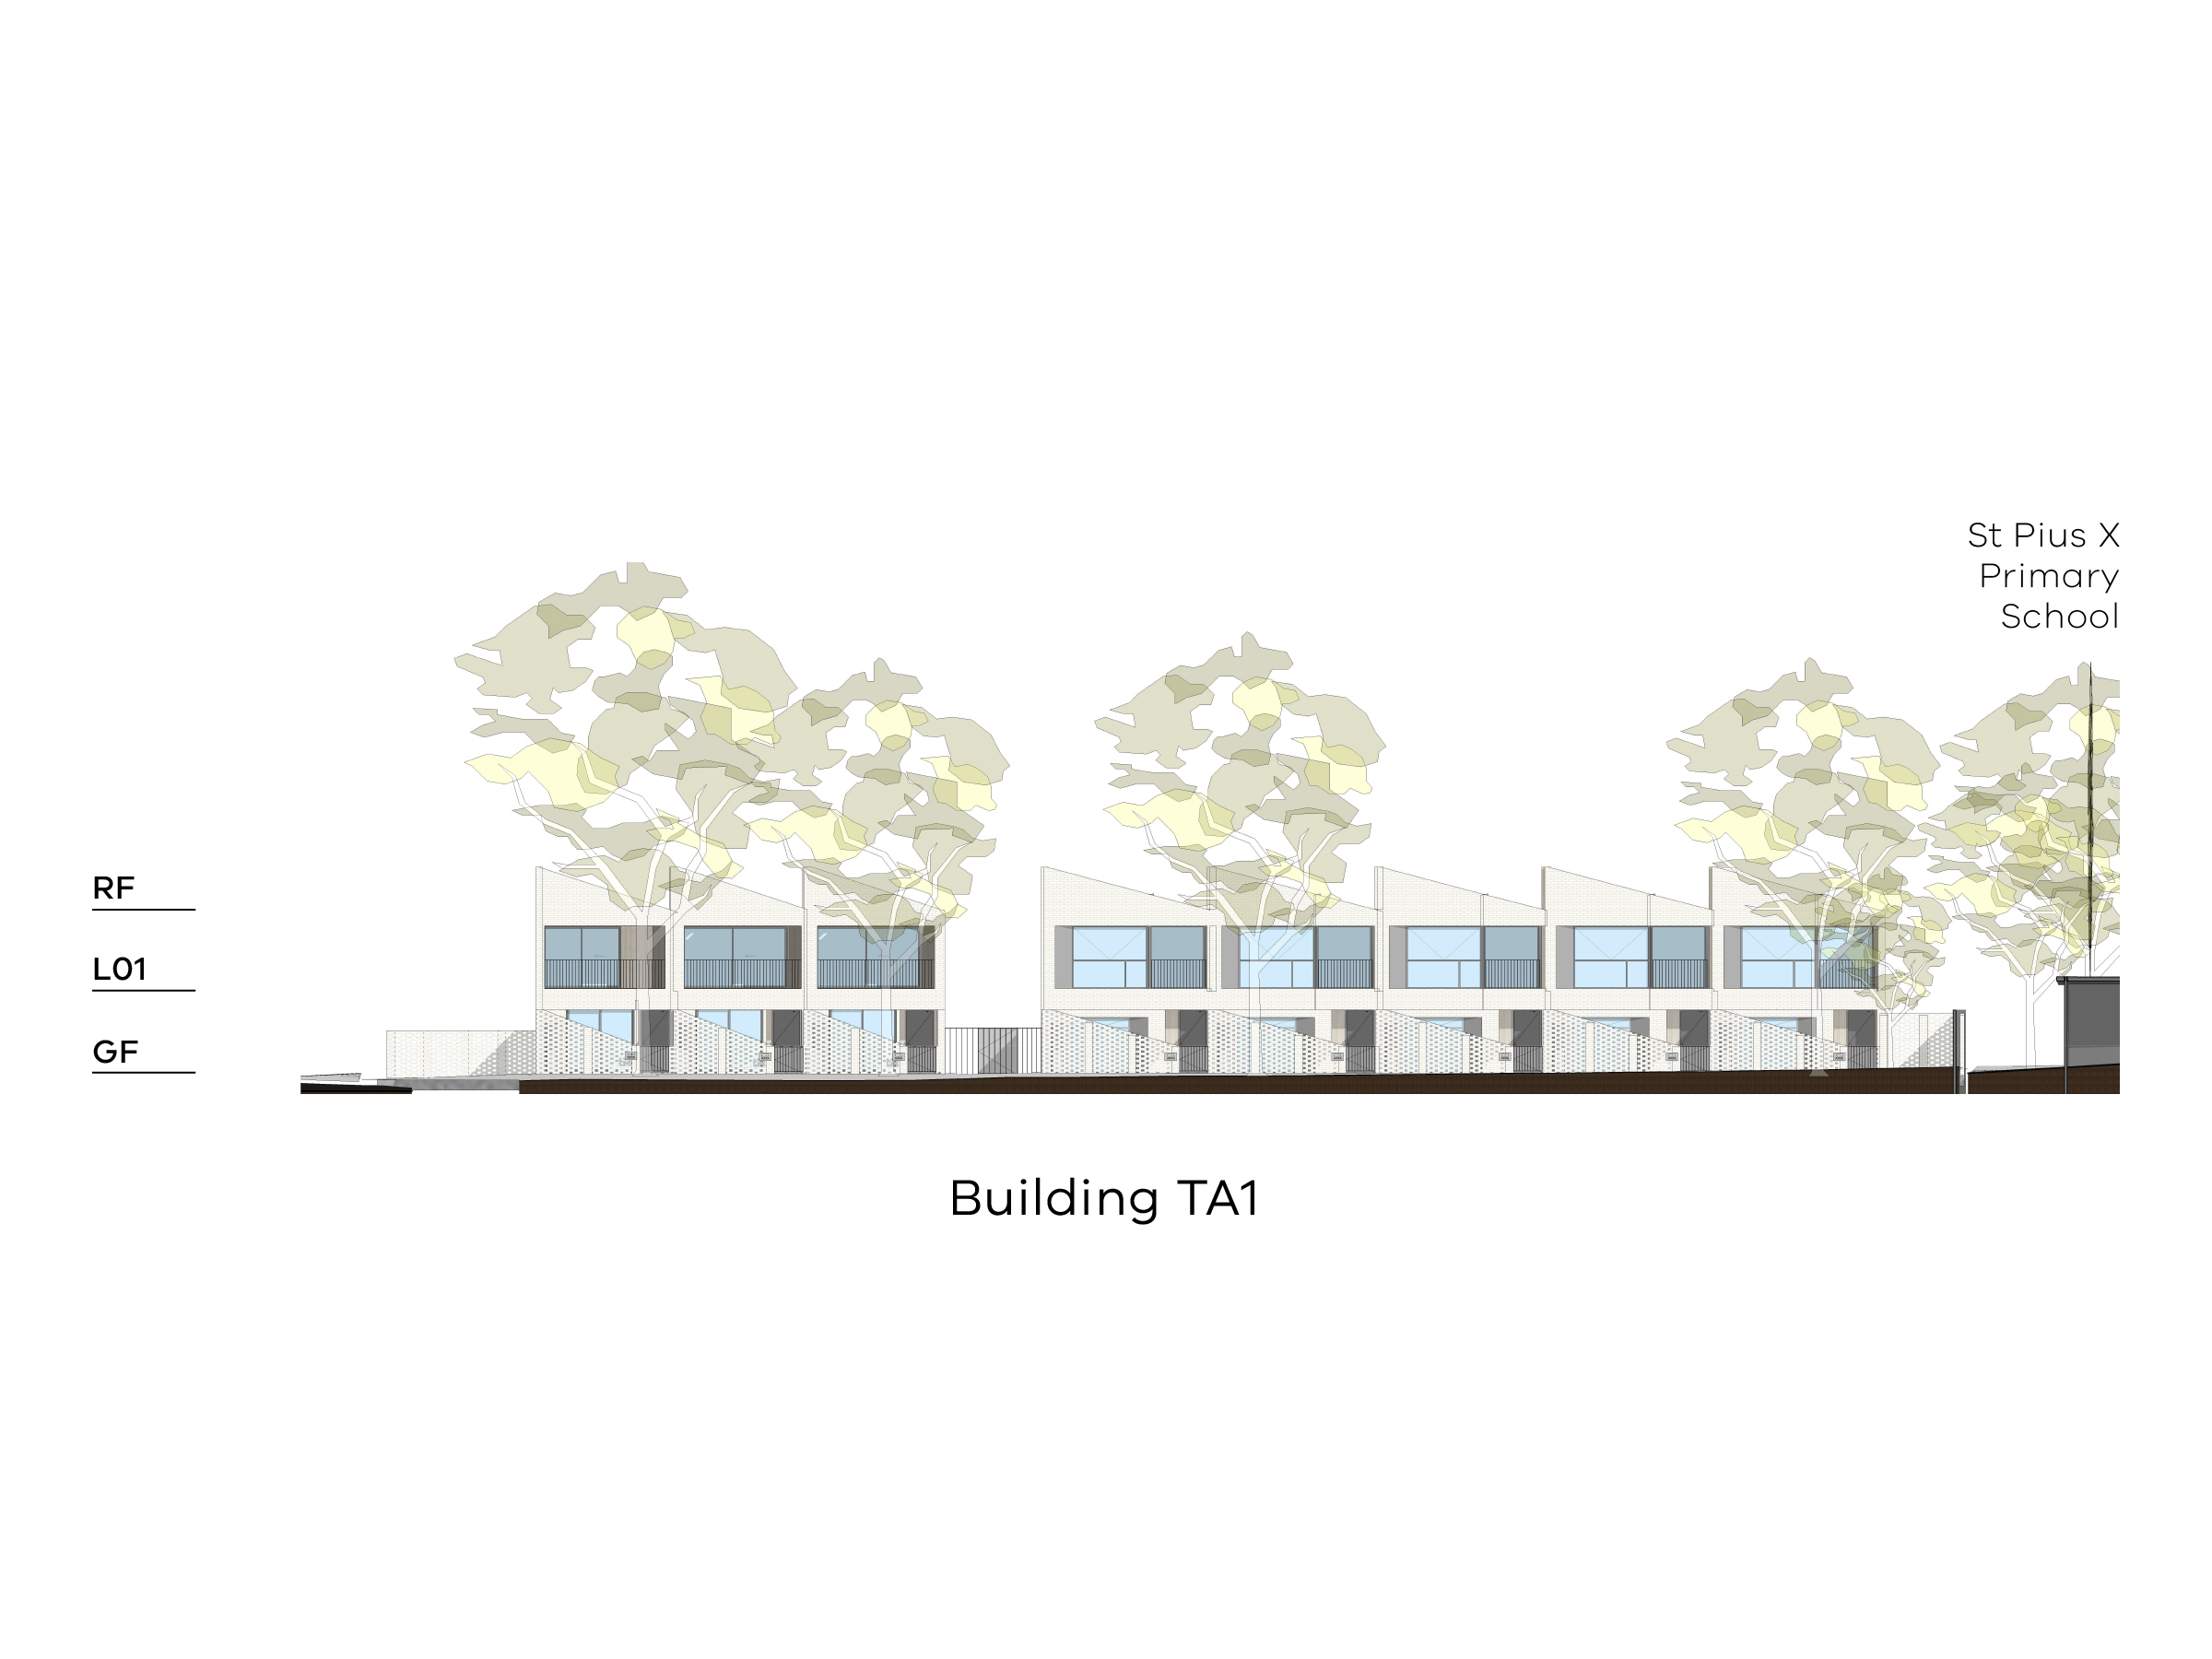 Diagram showing the height of building TA1 as seen from the park on site looking towards Altona Street. Building TA1 has a ground floor, a level 1 and a sloped roof.